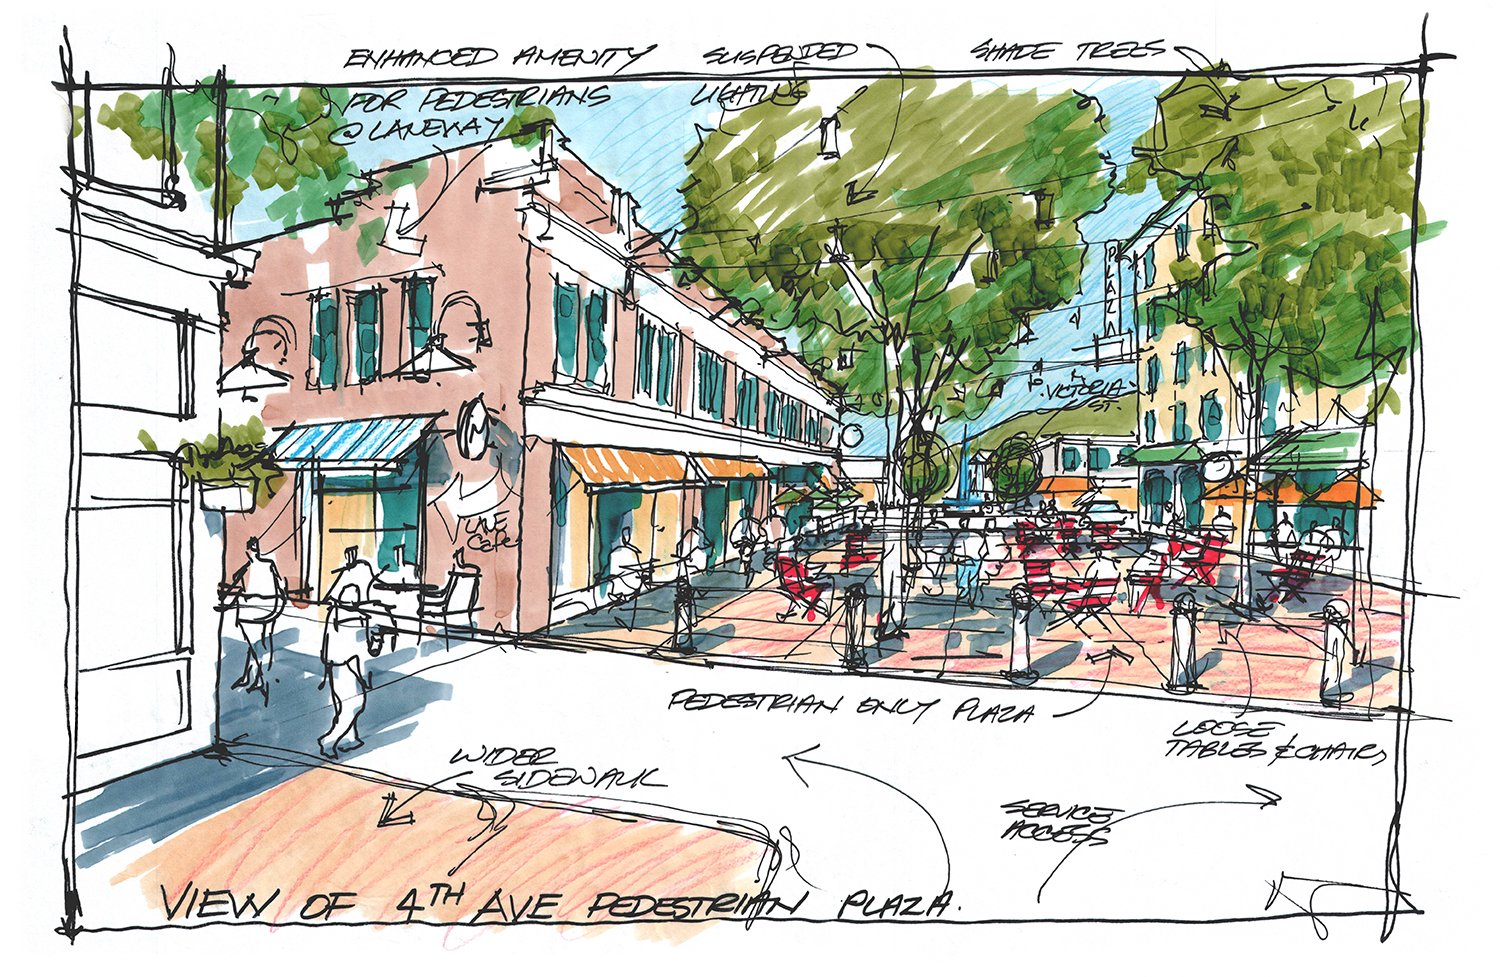 City looking to give downtown revitalization plan a test run